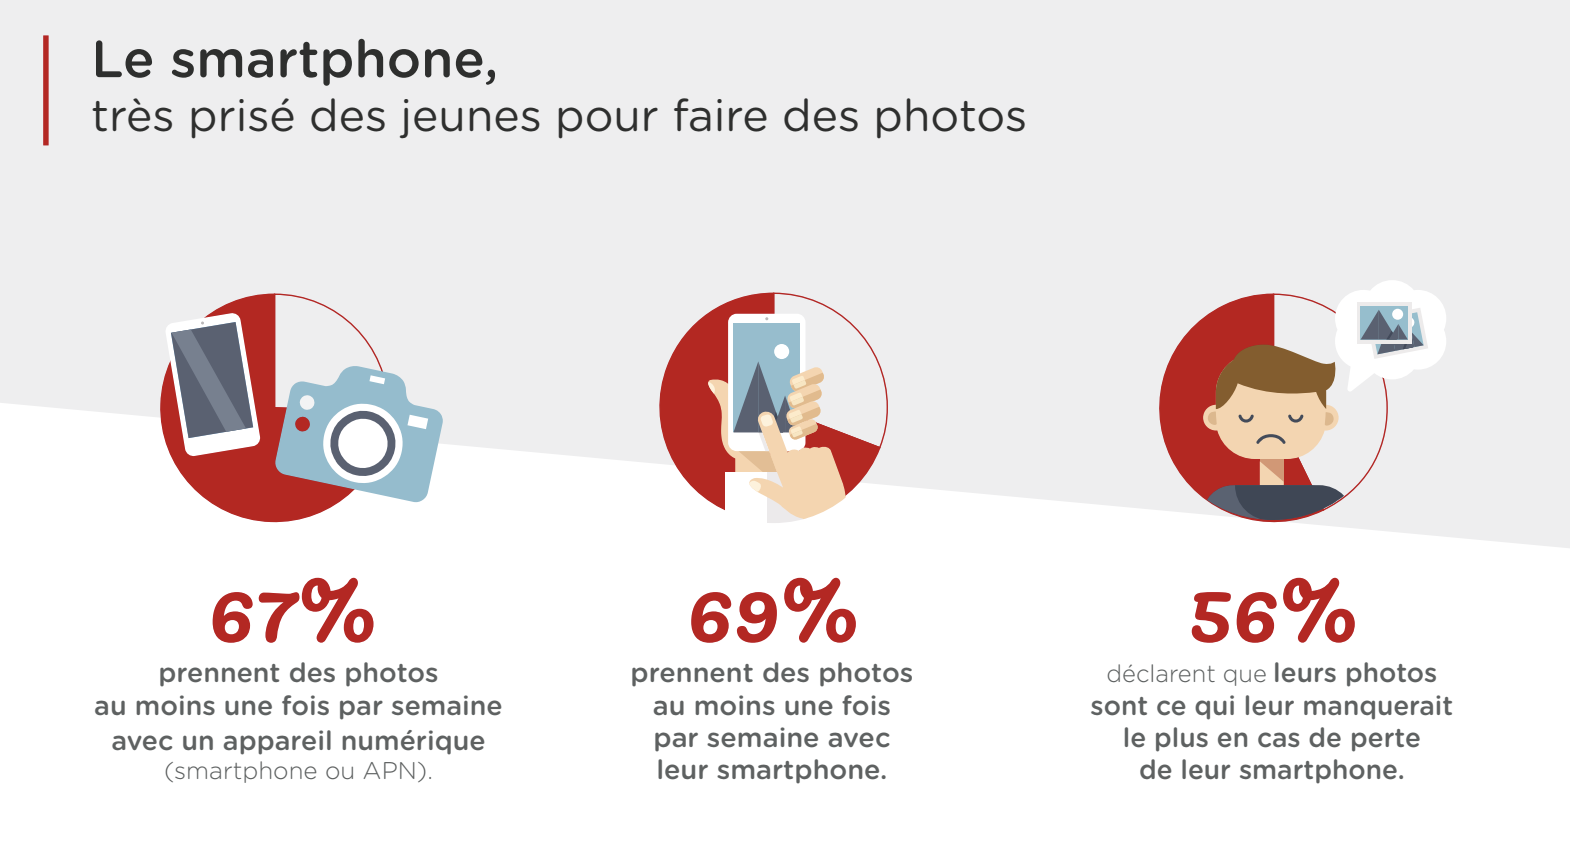 Photography, A Popular Medium in France Among Youngsters